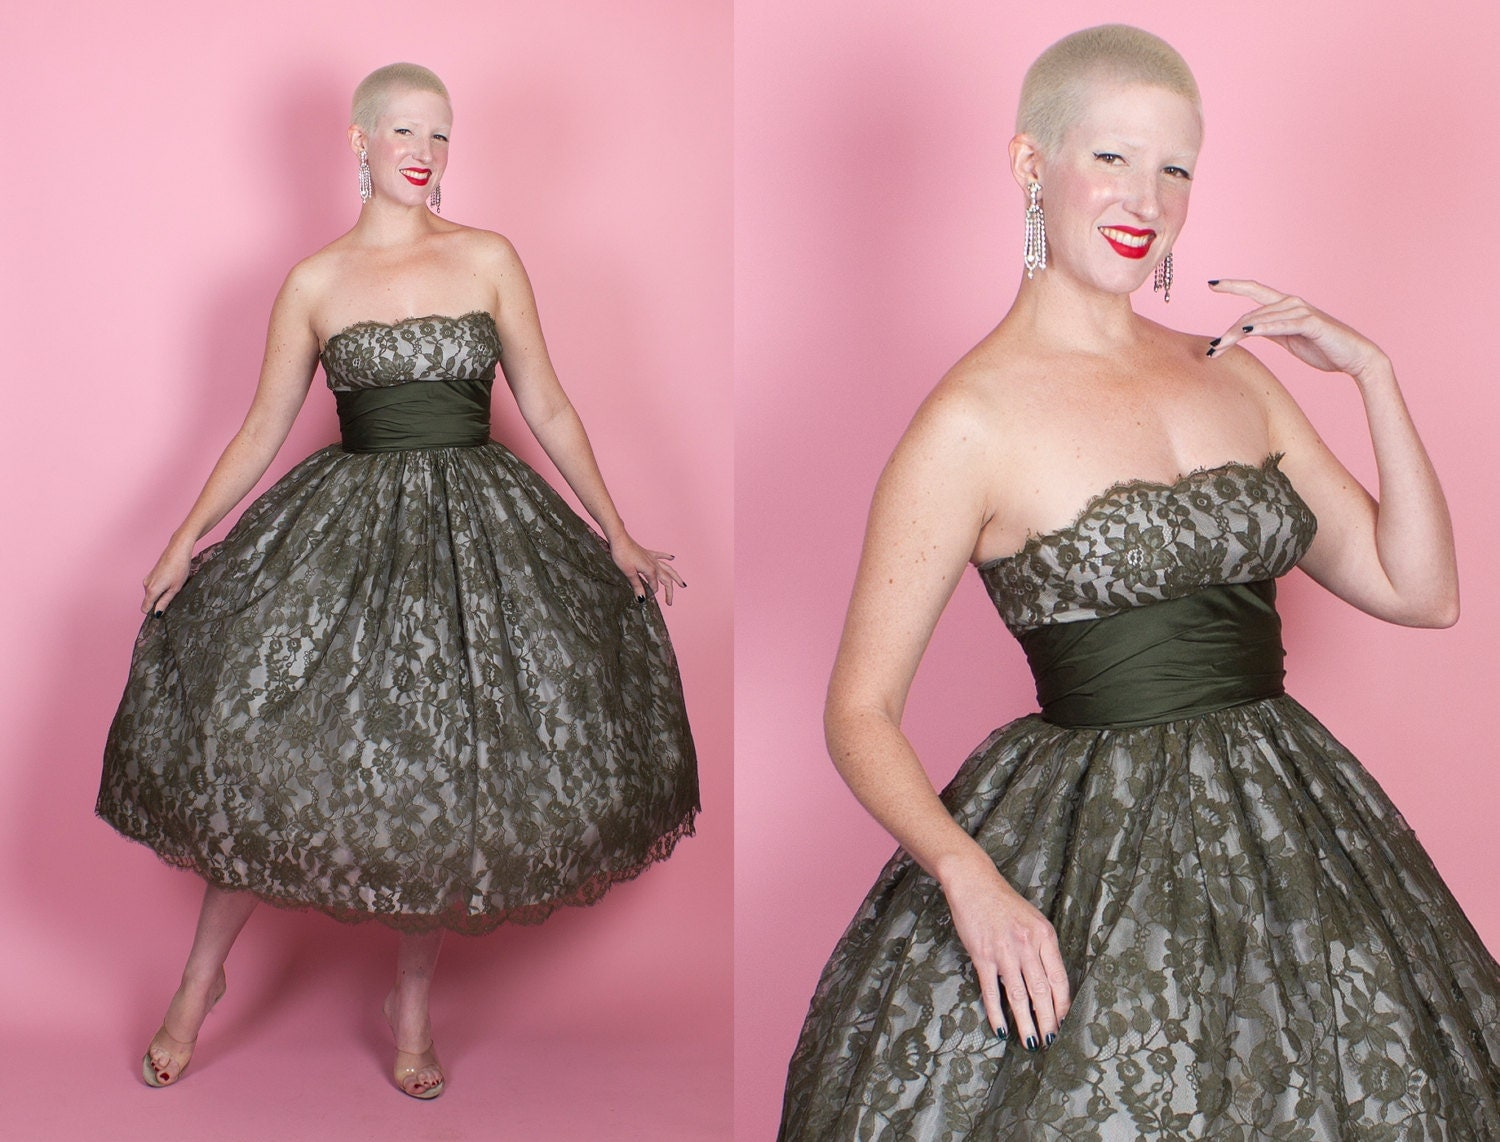 STUNNING 1950s New Look Olive Green Floral Chantilly Lace Over Silver Satin Strapless Party Dress w/ Silk Midsection by Marshall Field - M